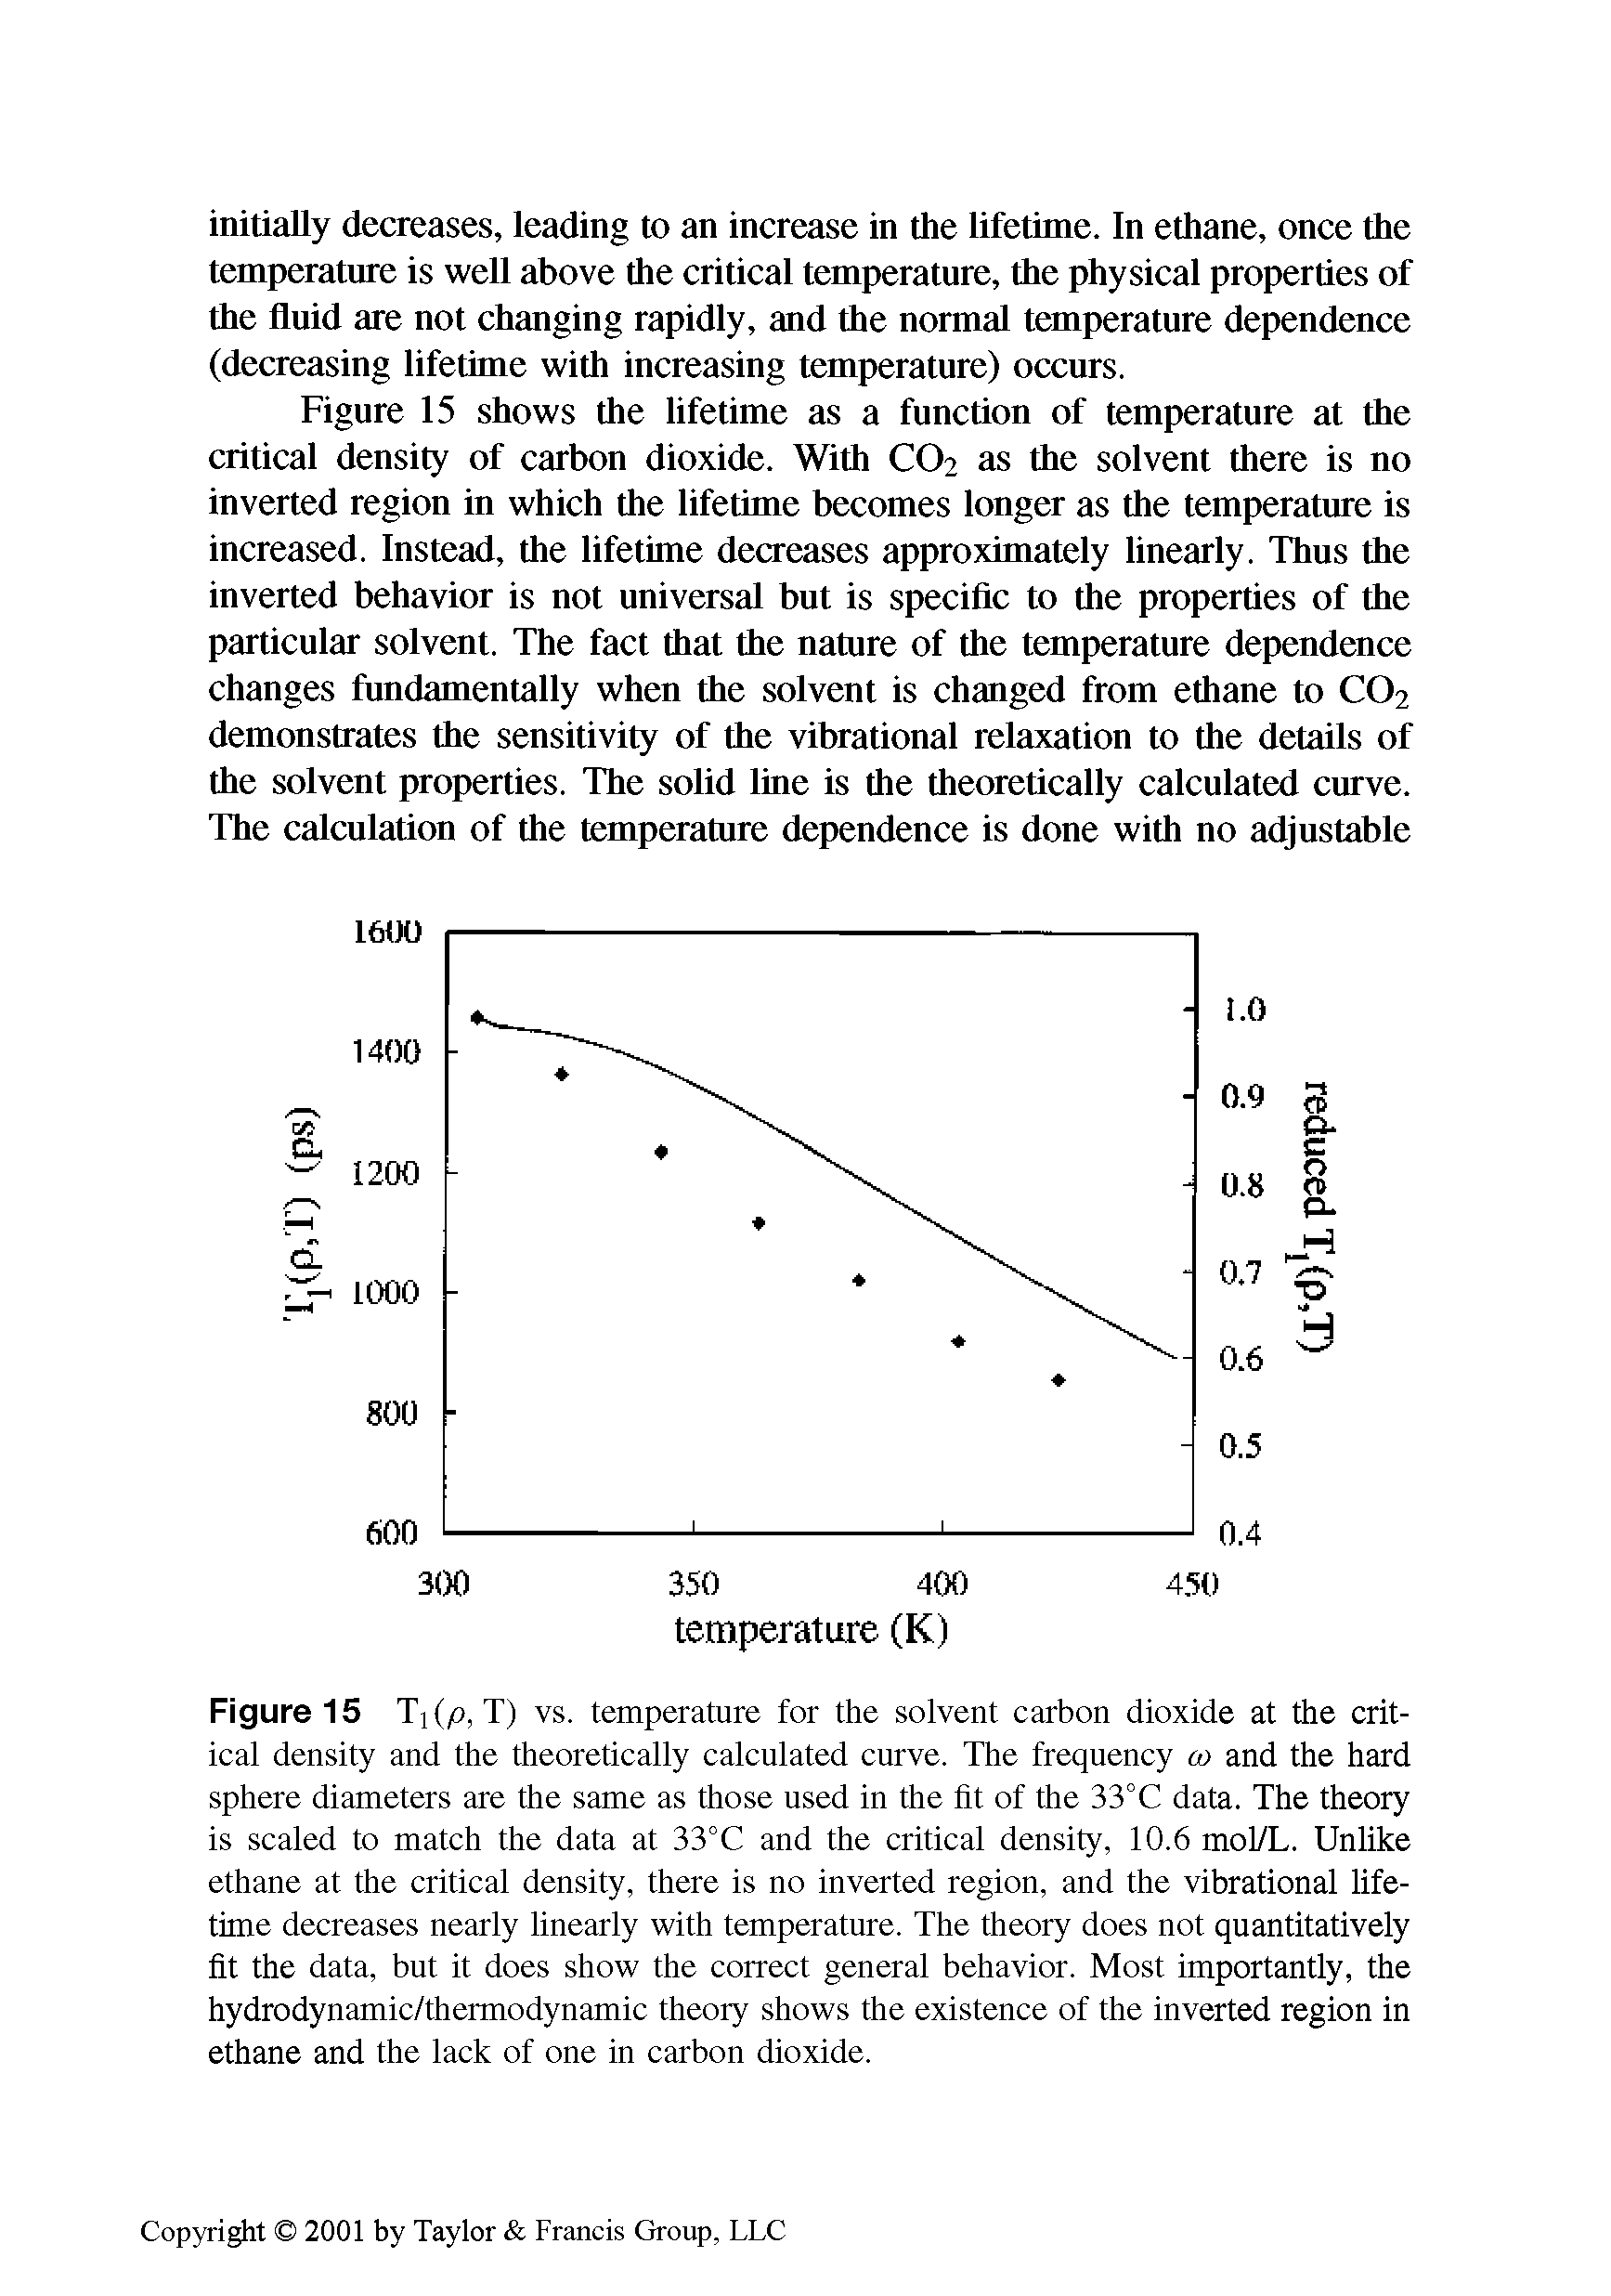 "Figure 15 Tj (p, T) vs. temperature for the <a href=""/info/carbon_dioxide_as_sfc_solvent"">solvent carbon dioxide</a> at the <a href=""/info/critical_density"">critical density</a> and the <a href=""/info/theoretical_calculations"">theoretically calculated</a> curve. The frequency u> and the <a href=""/info/hard_sphere_diameter"">hard sphere diameters</a> are the same as those used in the fit of the 33°C data. The theory is scaled to match the data at 33°C and the <a href=""/info/critical_density"">critical density</a>, 10.6 mol/L. Unlike ethane at the <a href=""/info/critical_density"">critical density</a>, there is no <a href=""/info/inverted_region"">inverted region</a>, and the <a href=""/info/vibrational_lifetime"">vibrational lifetime</a> decreases nearly linearly with temperature. The theory does not quantitatively fit the data, but it does show the correct <a href=""/info/general_behavior"">general behavior</a>. Most importantly, the hydrodynamic/<a href=""/info/thermodynamic_theory"">thermodynamic theory</a> shows the existence of the <a href=""/info/inverted_region"">inverted region</a> in ethane and the lack of one in carbon dioxide."